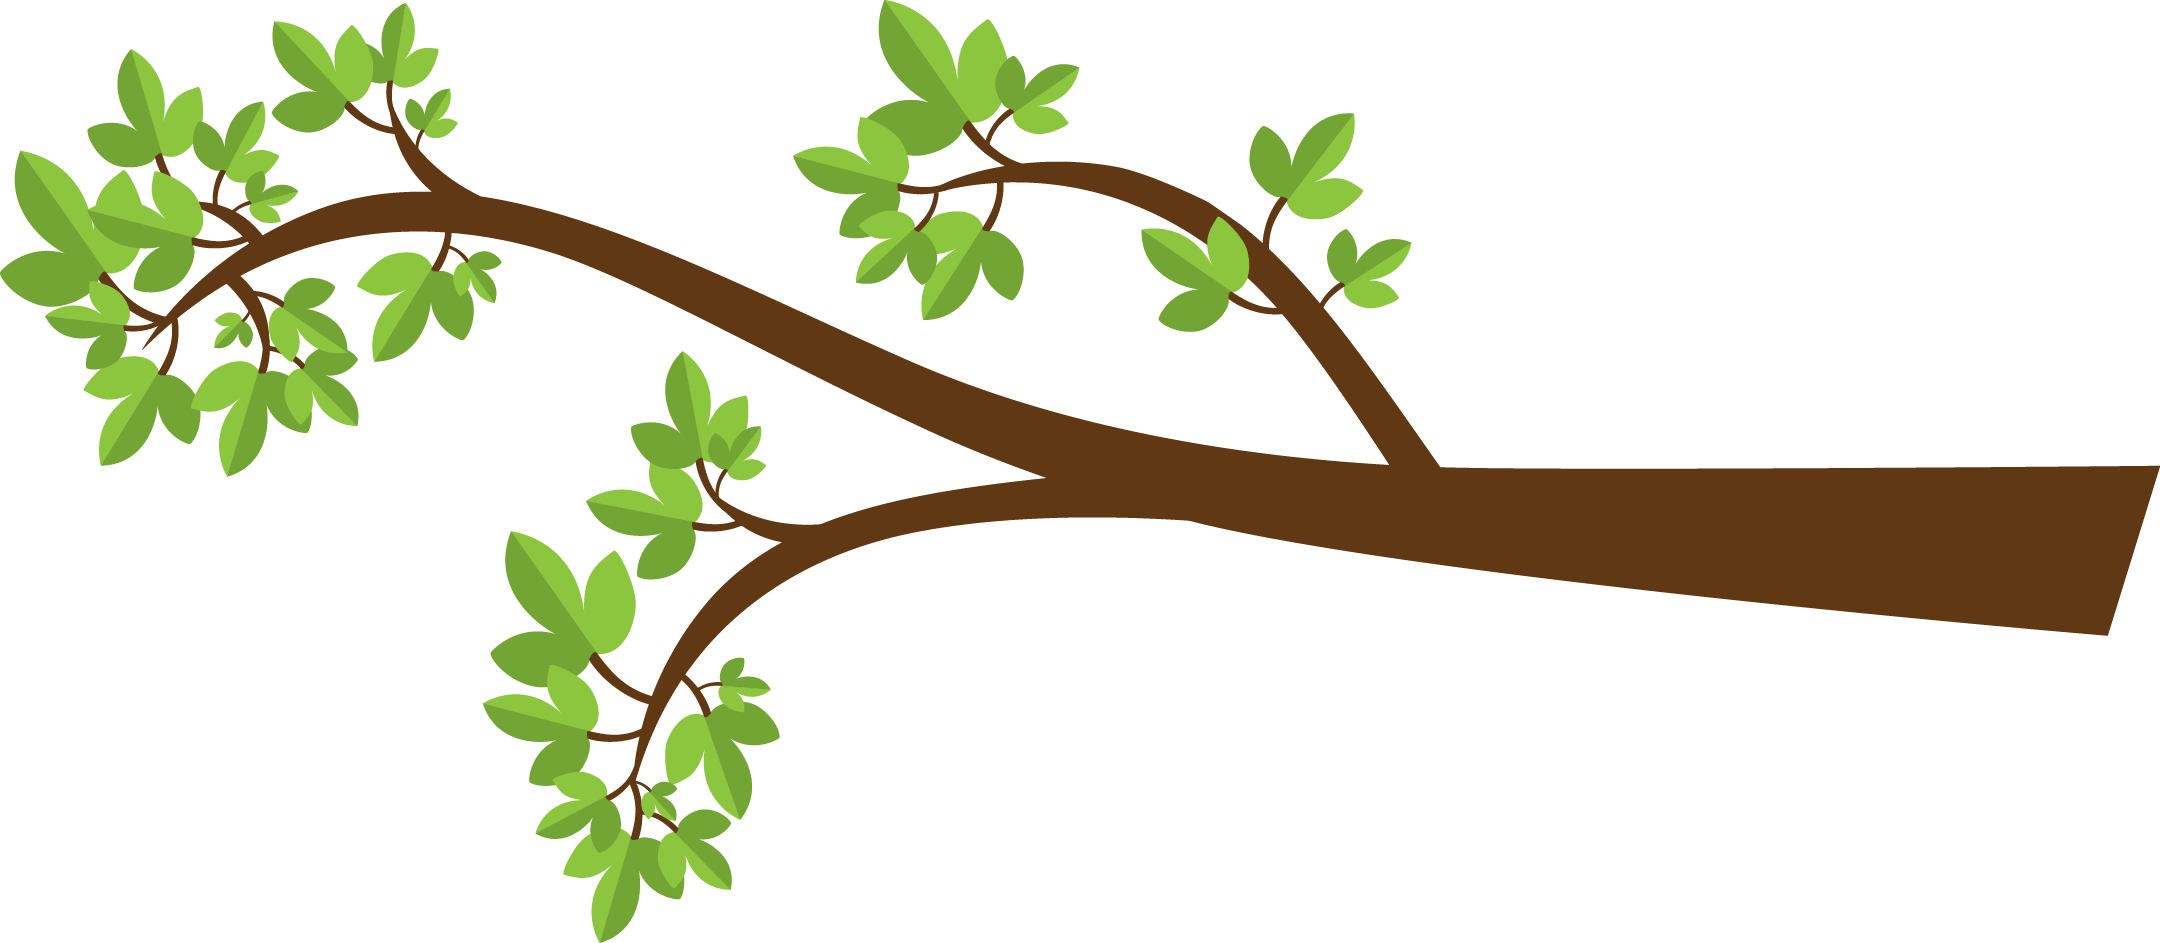 Tree with owl clipart freeuse library Image Of Tree Branch - ClipArt Best | Crafty stuff | Pinterest ... freeuse library